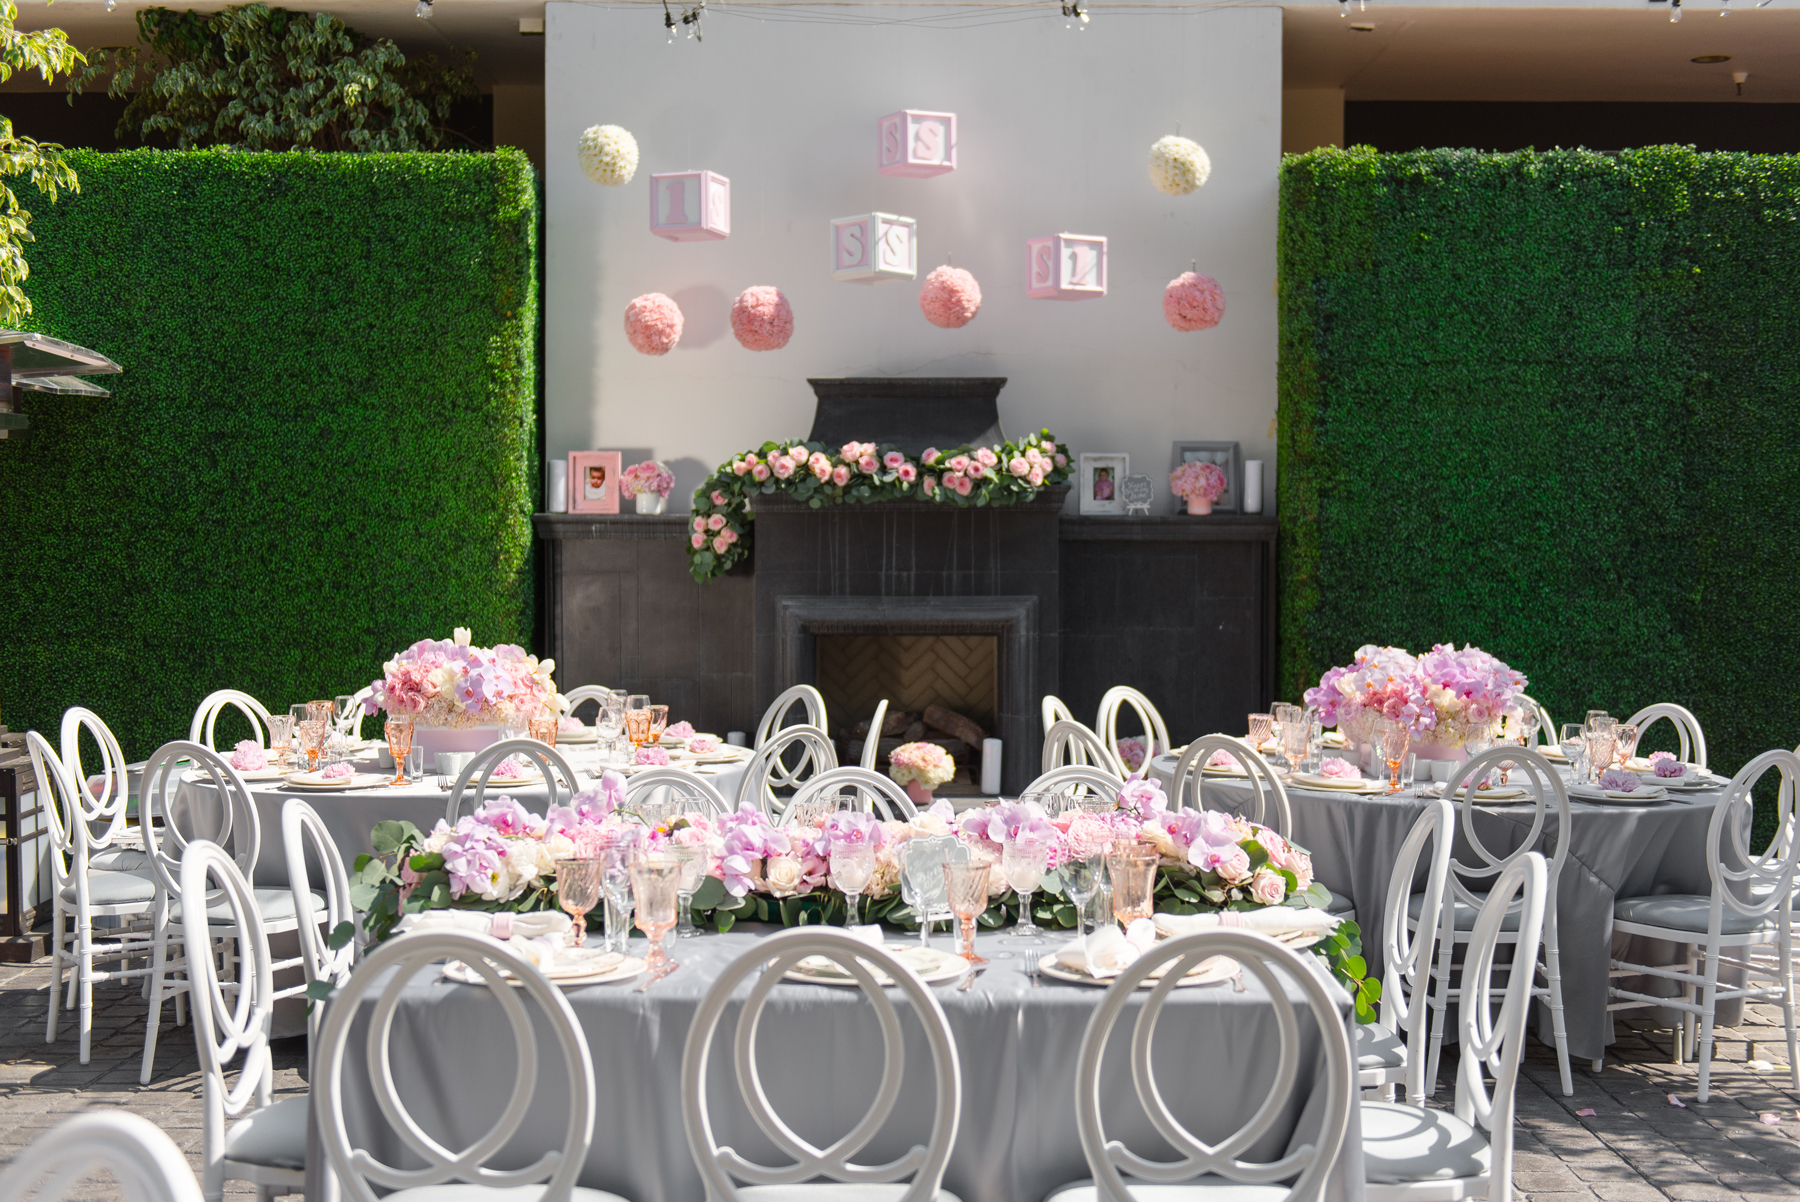 Posted by Sonia Sharma Events - A Event Planner professional